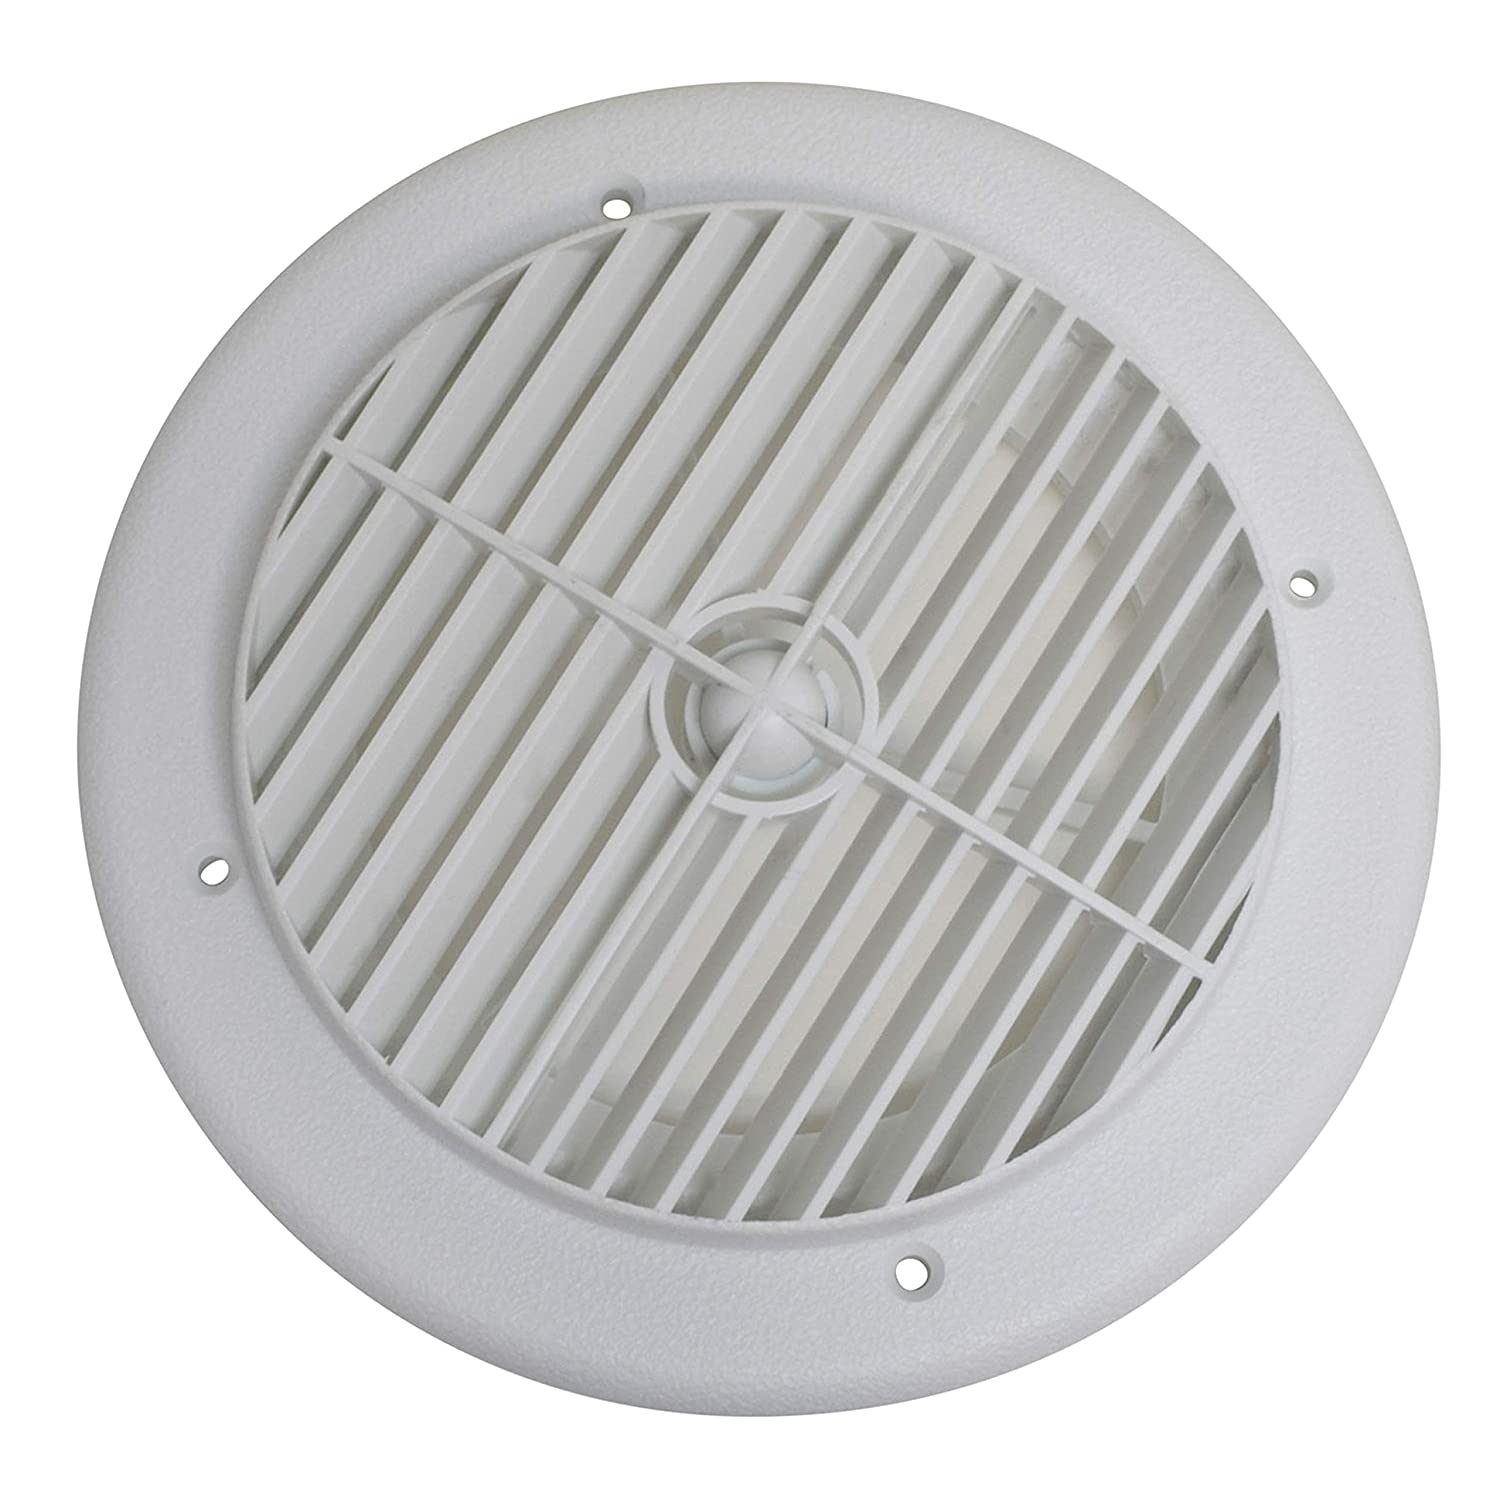 Valterra A10-3355VP White Rotating Heat and A/C Register (4' ID, 7' OD) 7 OD)